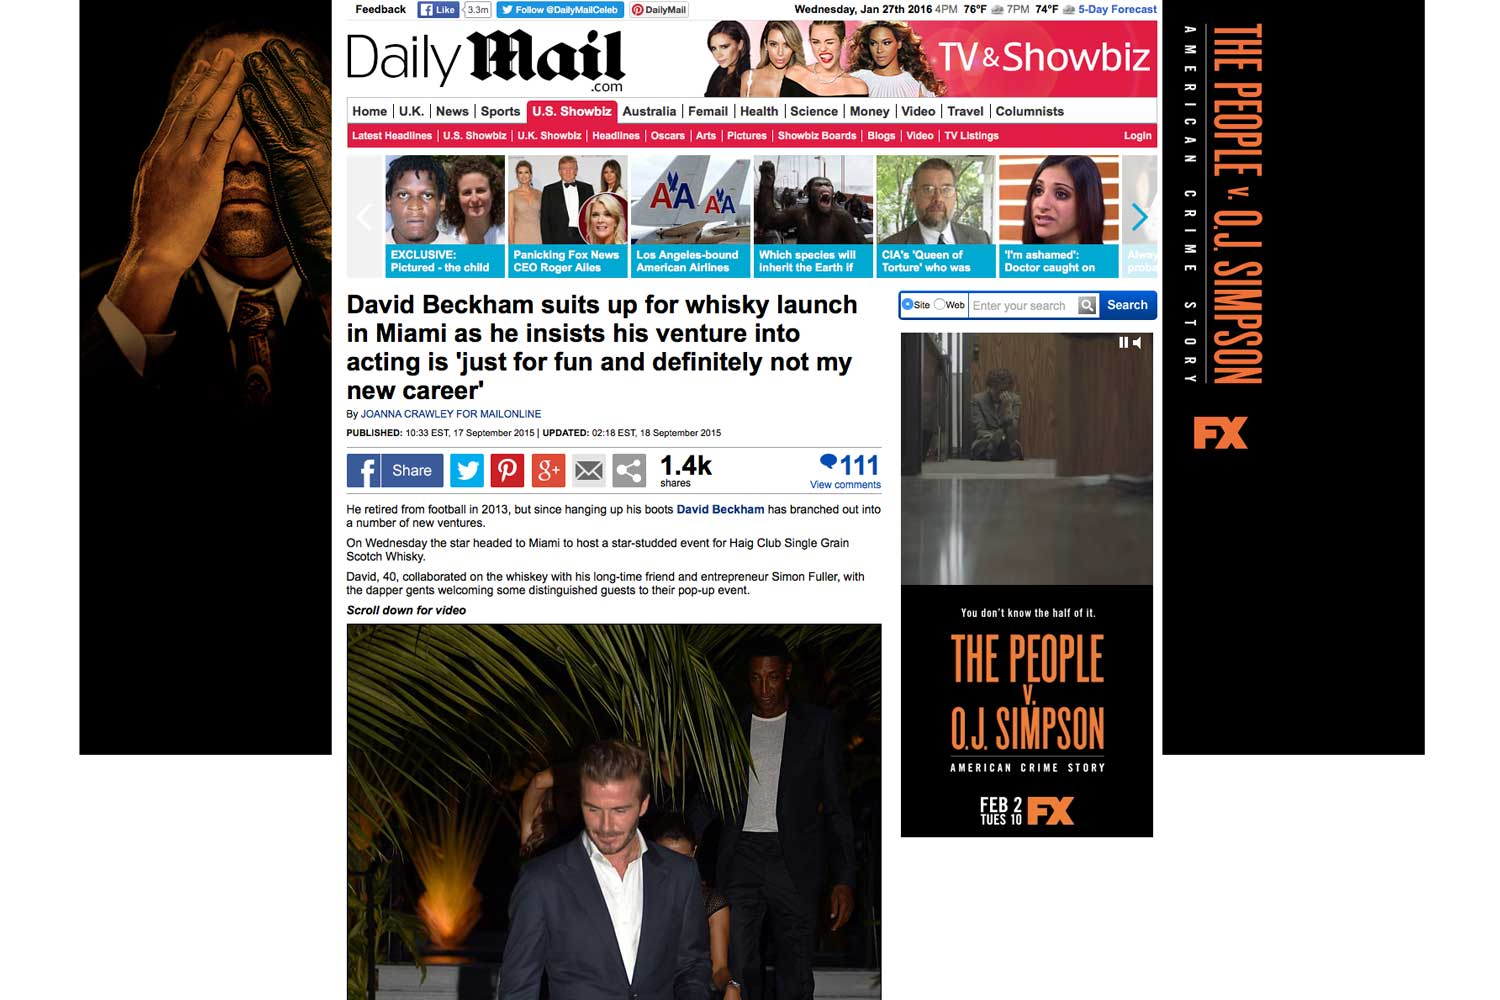 """<p><strong>Daily Mail</strong><a href=""""http://goo.gl/8TO74F"""" target=""""_blank"""">Read Article→</a></p>"""